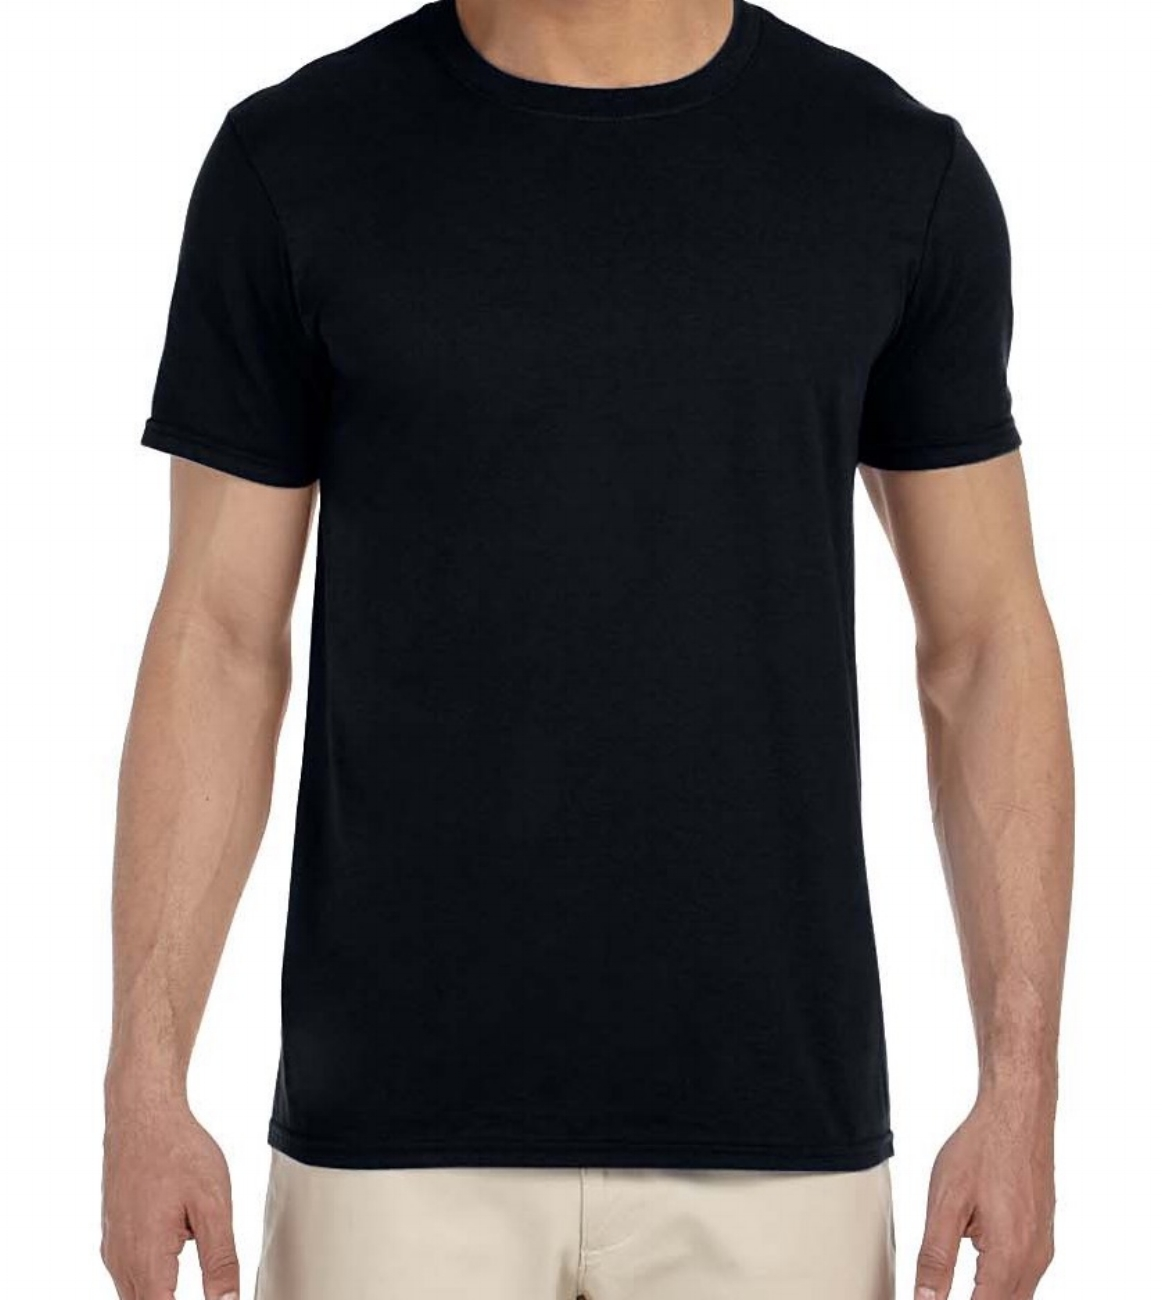 """Unisex """"softstyle"""" crew neck t-shirt (100% cotton in most colours, good fit, soft, $)"""